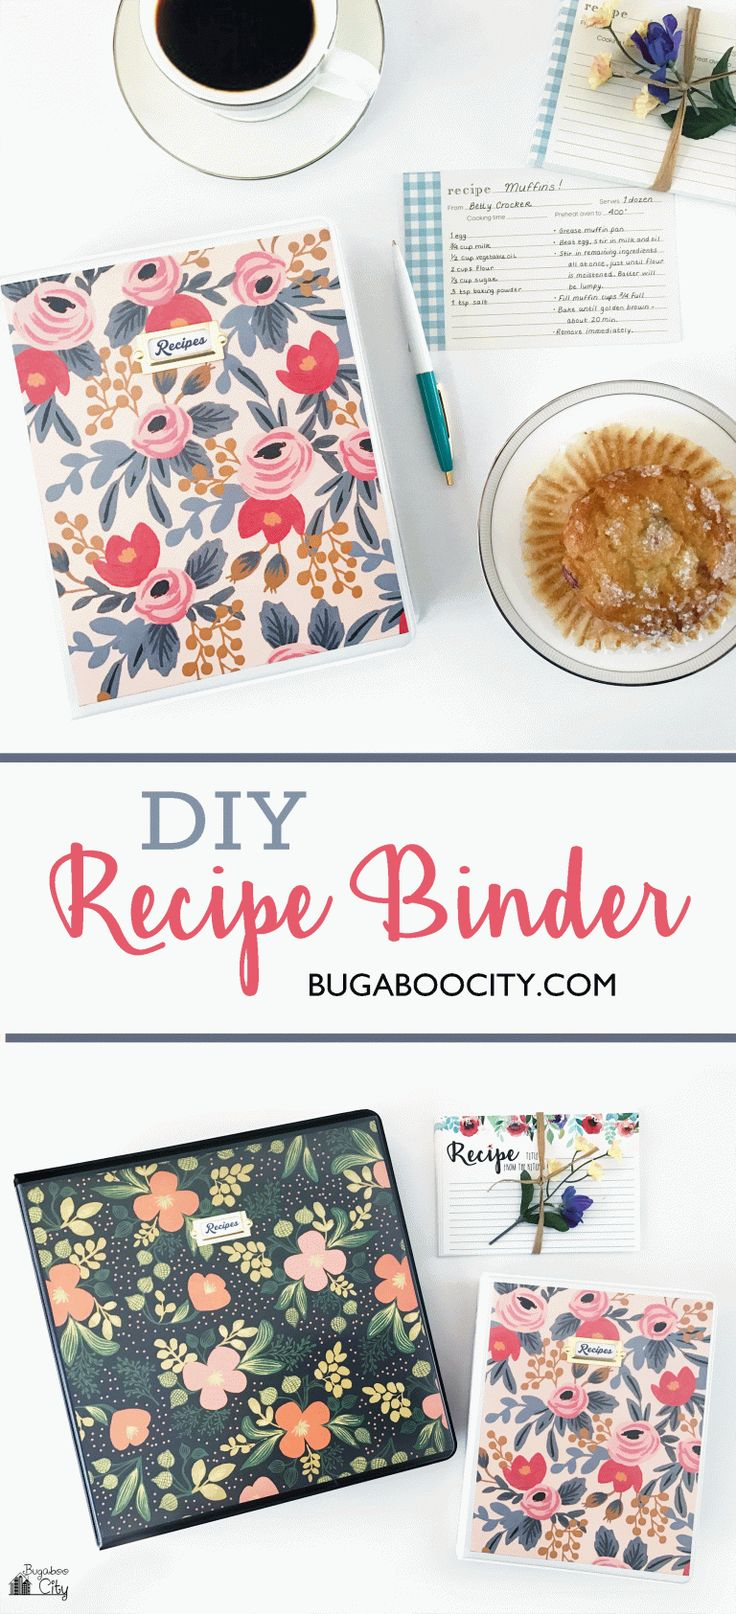 DIY Recipe Binder using Rifle Paper Co. wrapping paper sheets!